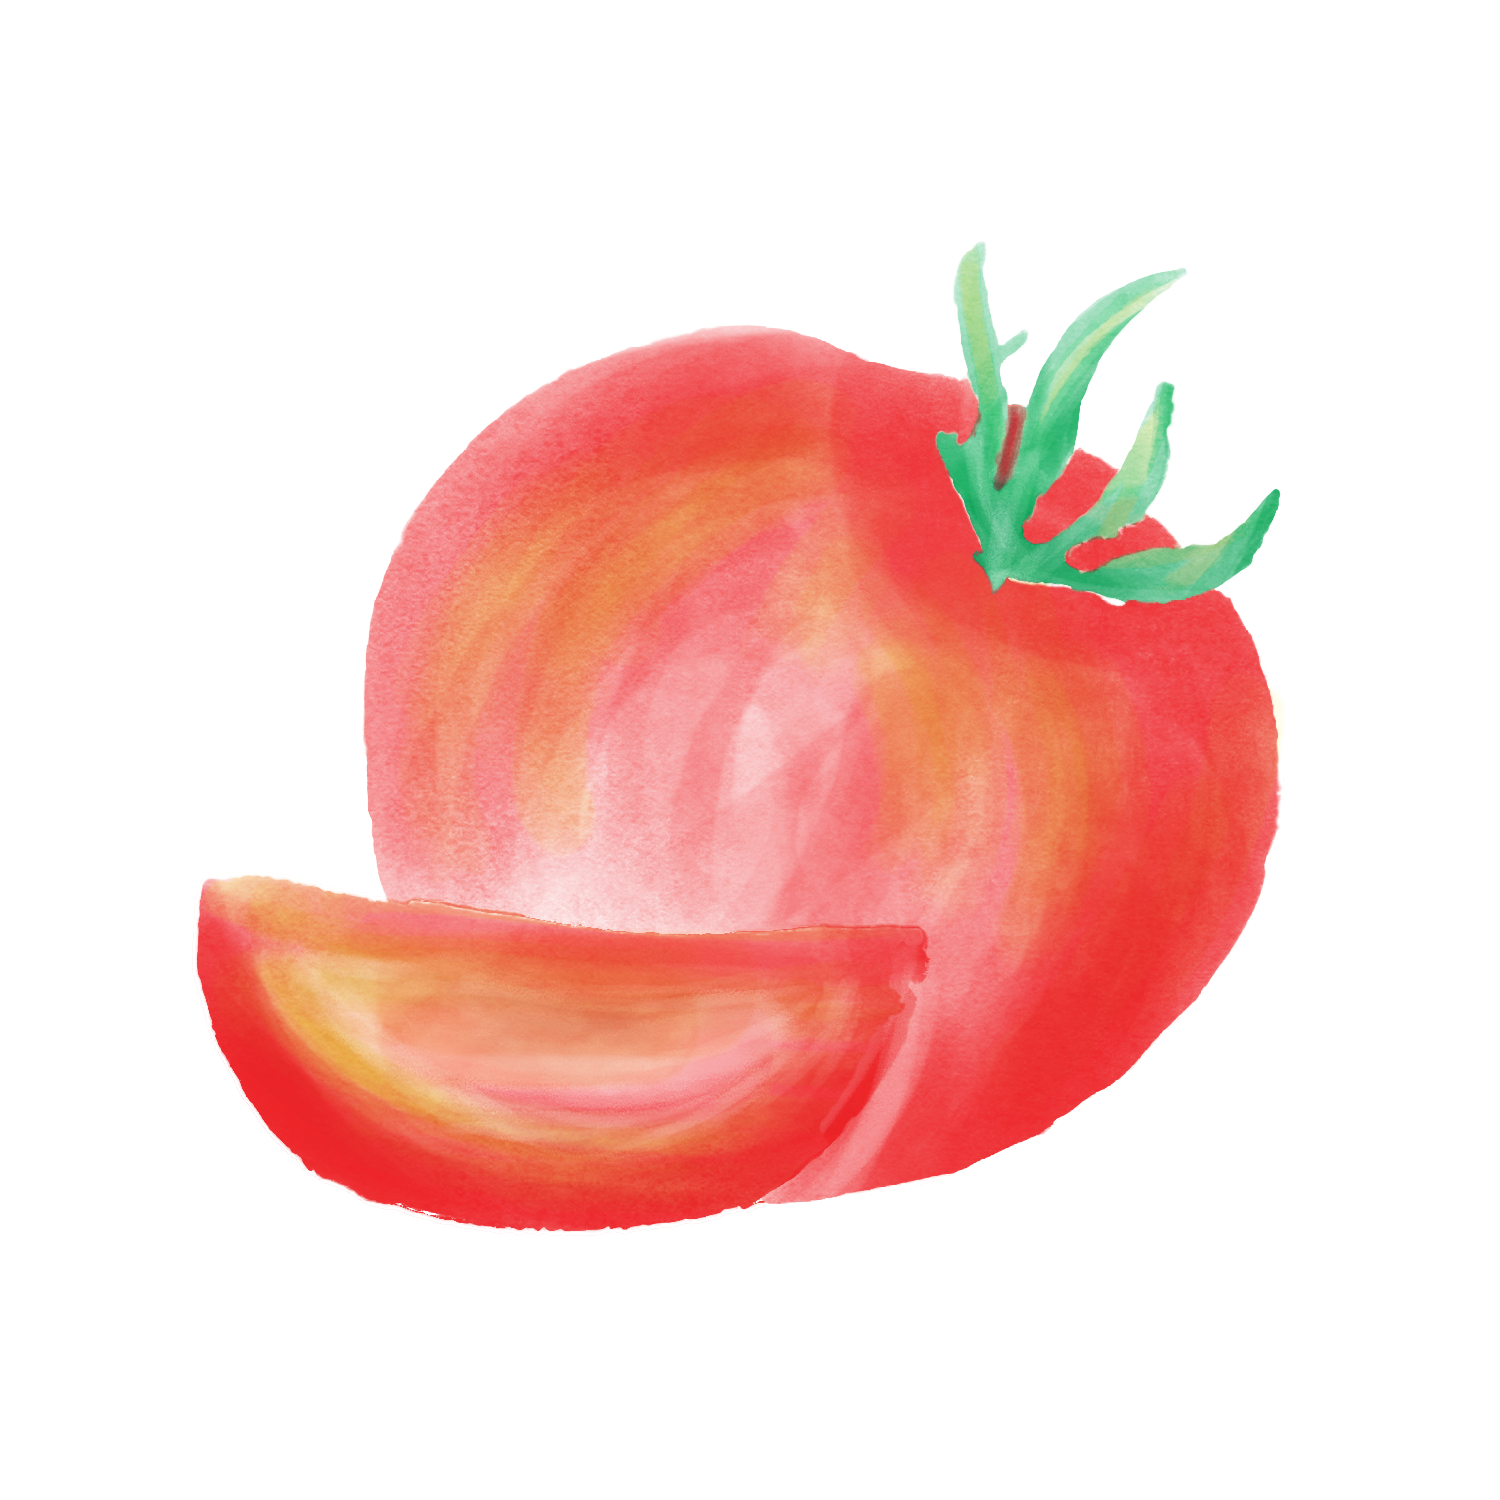 PS_Tomato.png